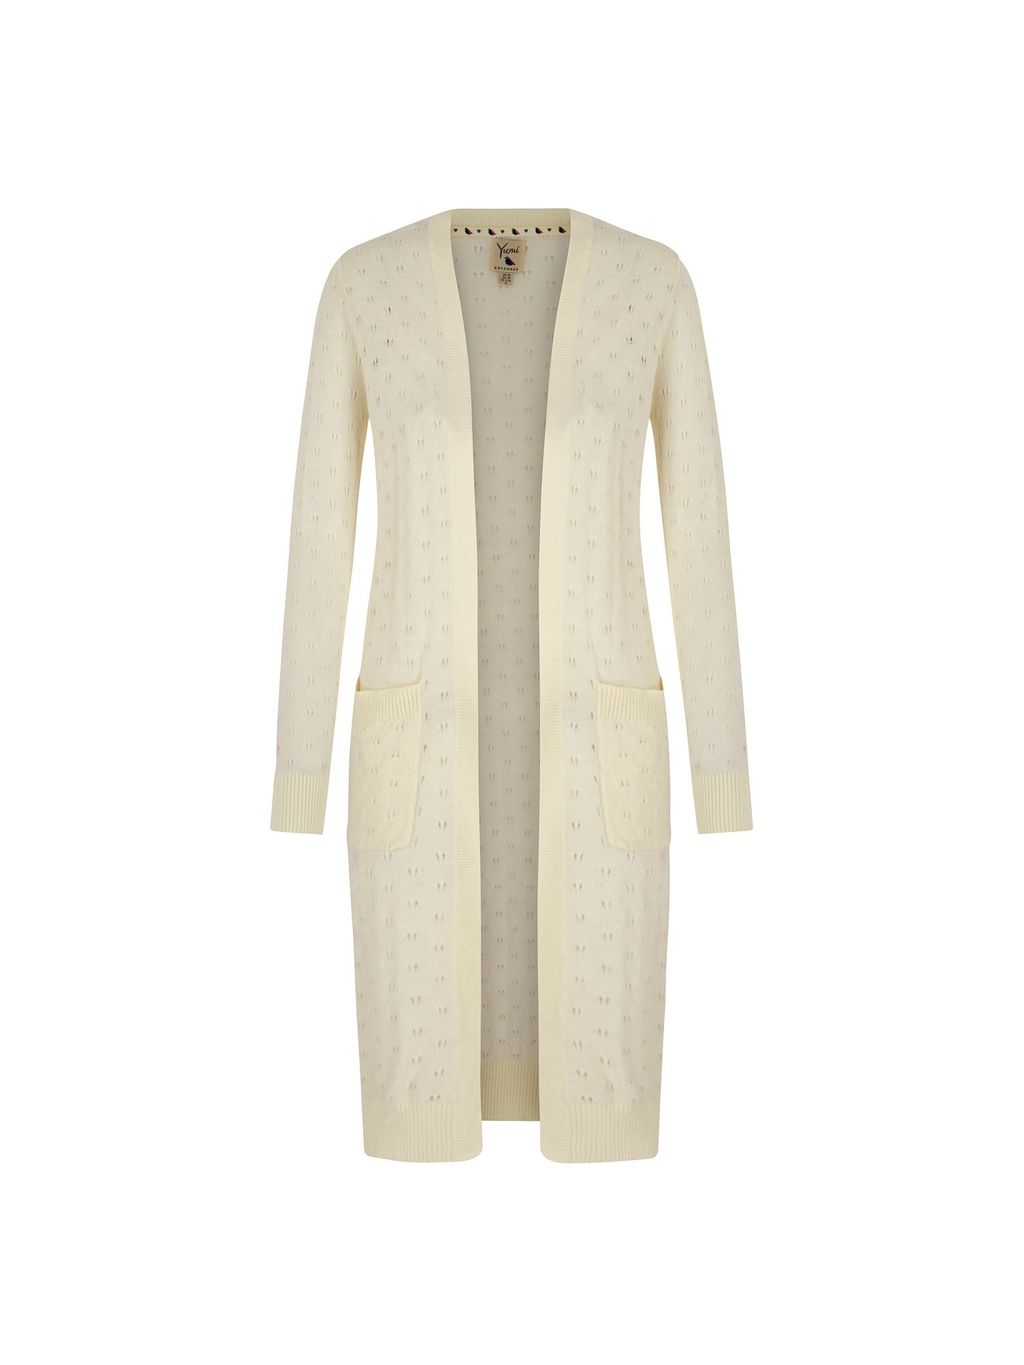 Long Pointelle Cardigan, Cream - pattern: plain; neckline: collarless open; style: open front; length: on the knee; predominant colour: ivory/cream; occasions: casual, creative work; fibres: cotton - 100%; fit: standard fit; sleeve length: long sleeve; sleeve style: standard; texture group: knits/crochet; pattern type: knitted - fine stitch; season: s/s 2016; wardrobe: basic